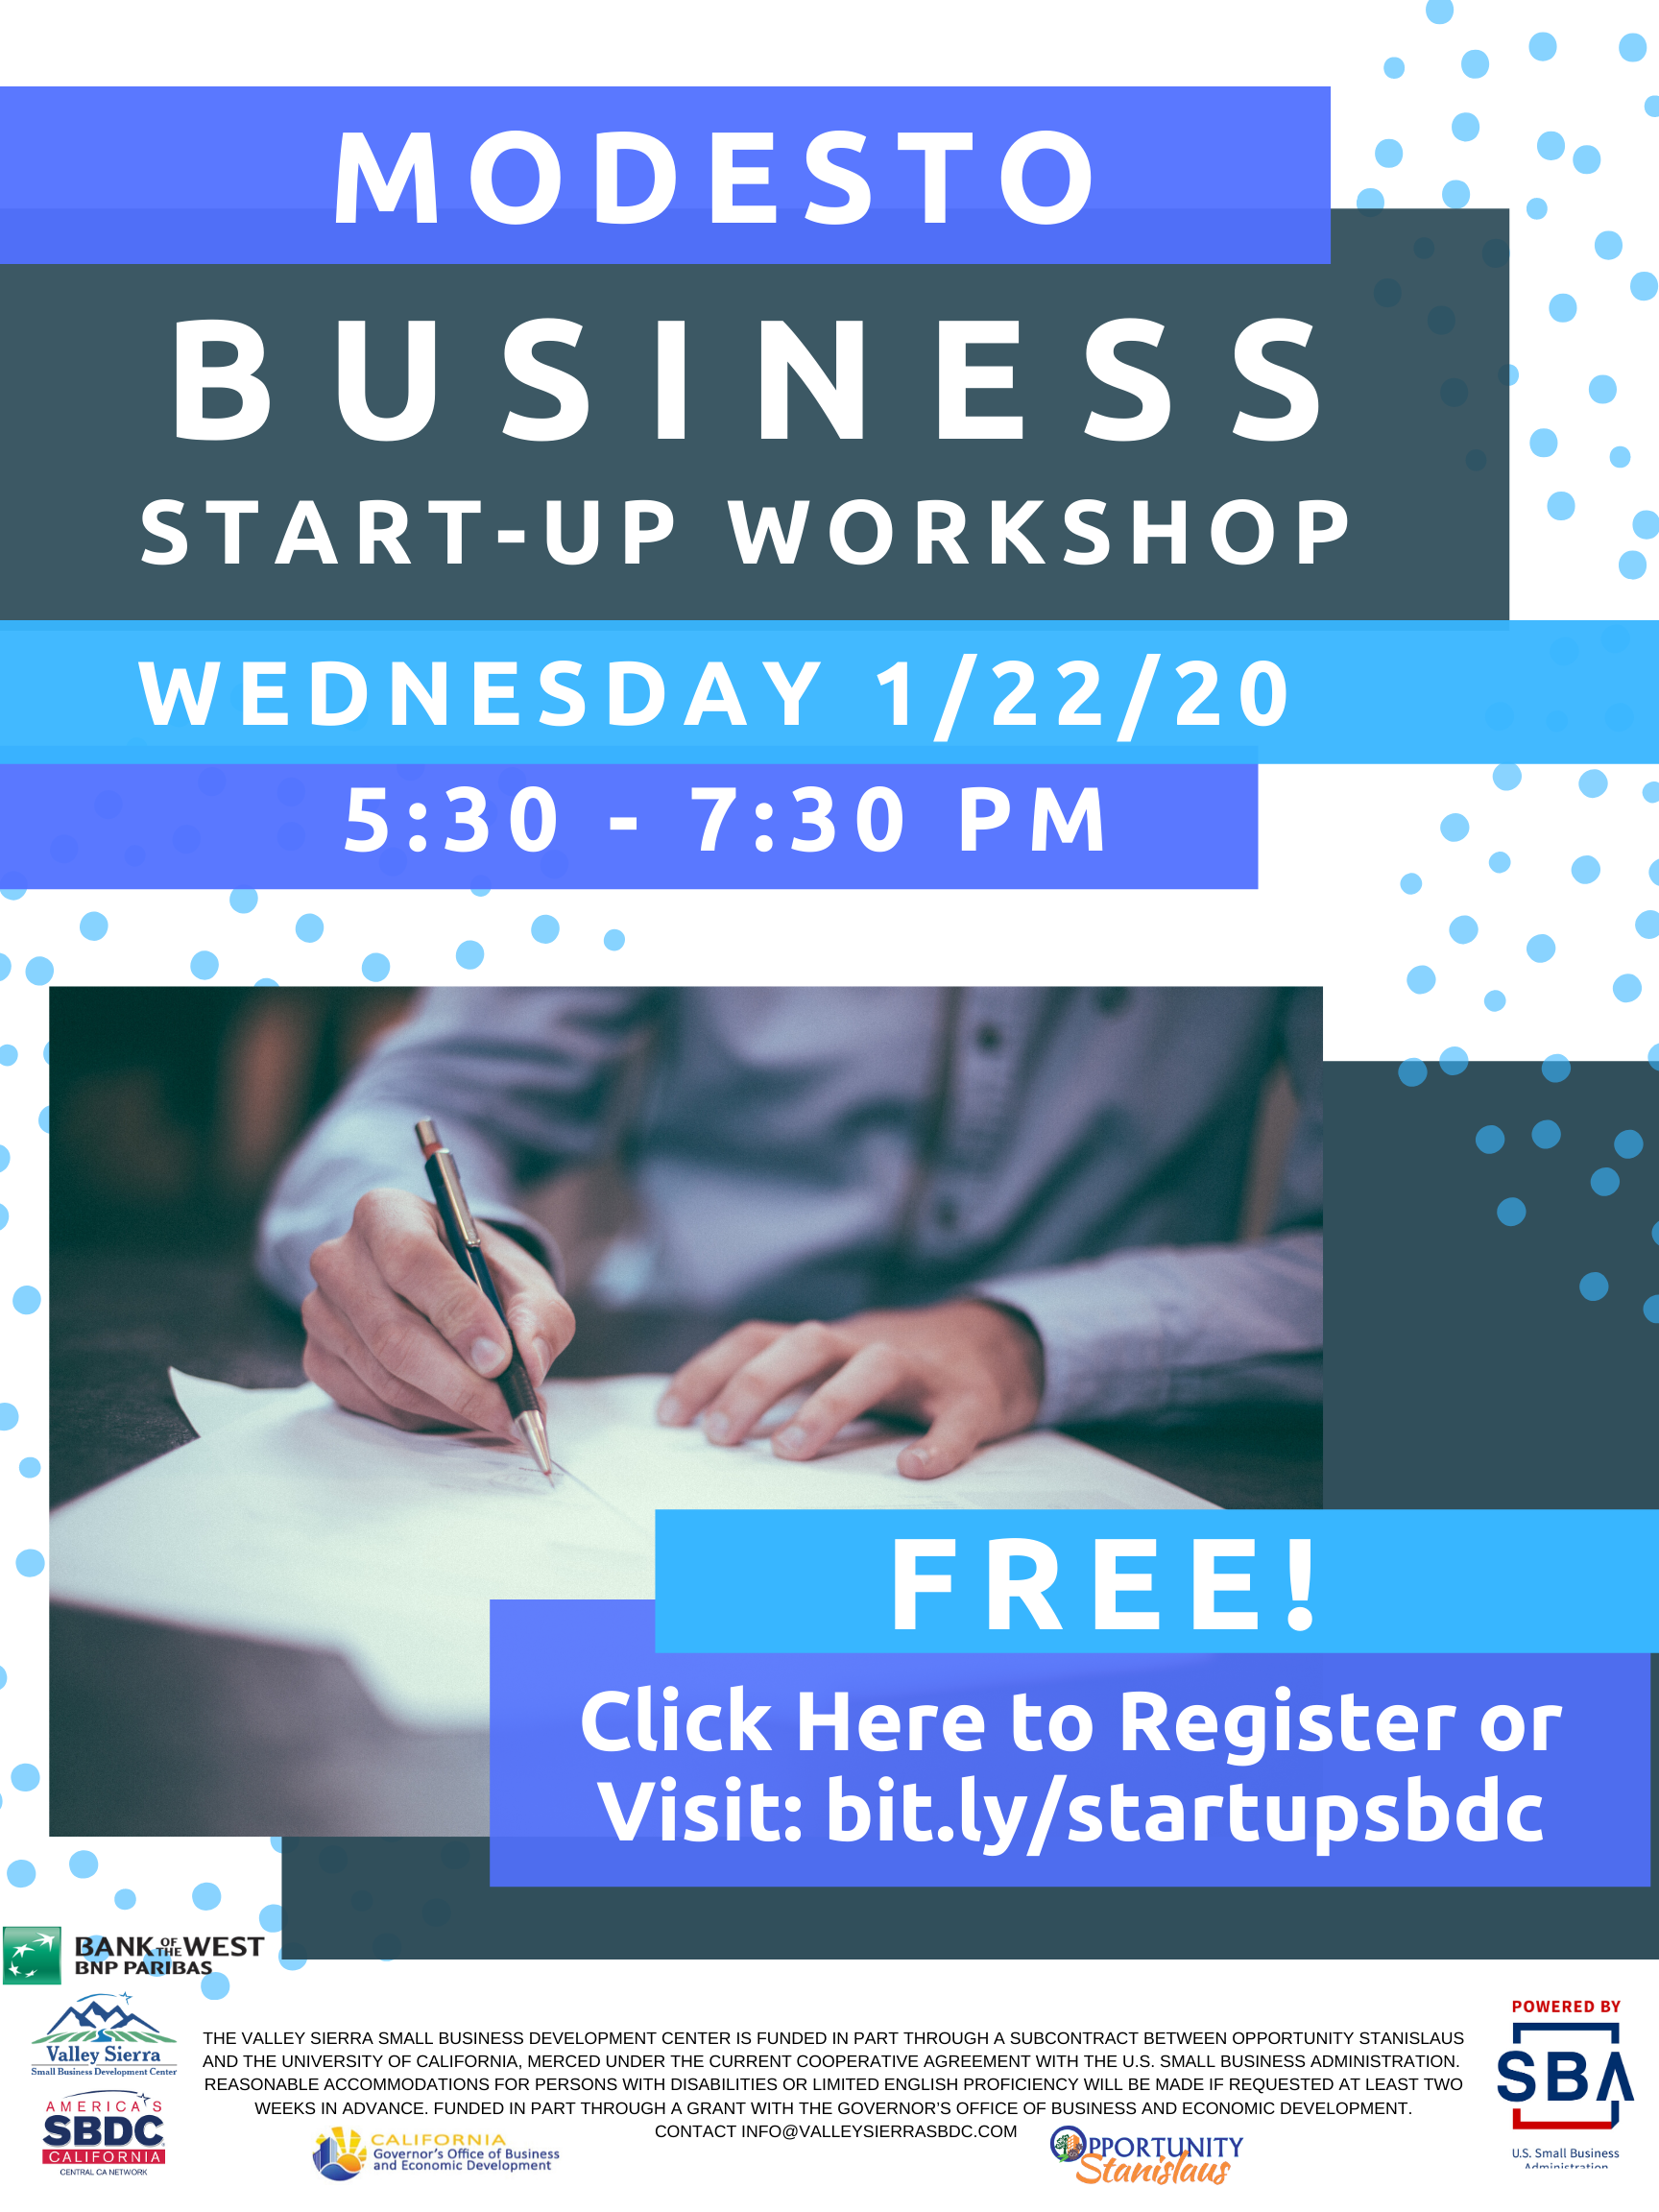 Event Flyer, Modesto Business Start Up, Wednesday 1/22/20 at the Valley Sierra SBDC. FREE.